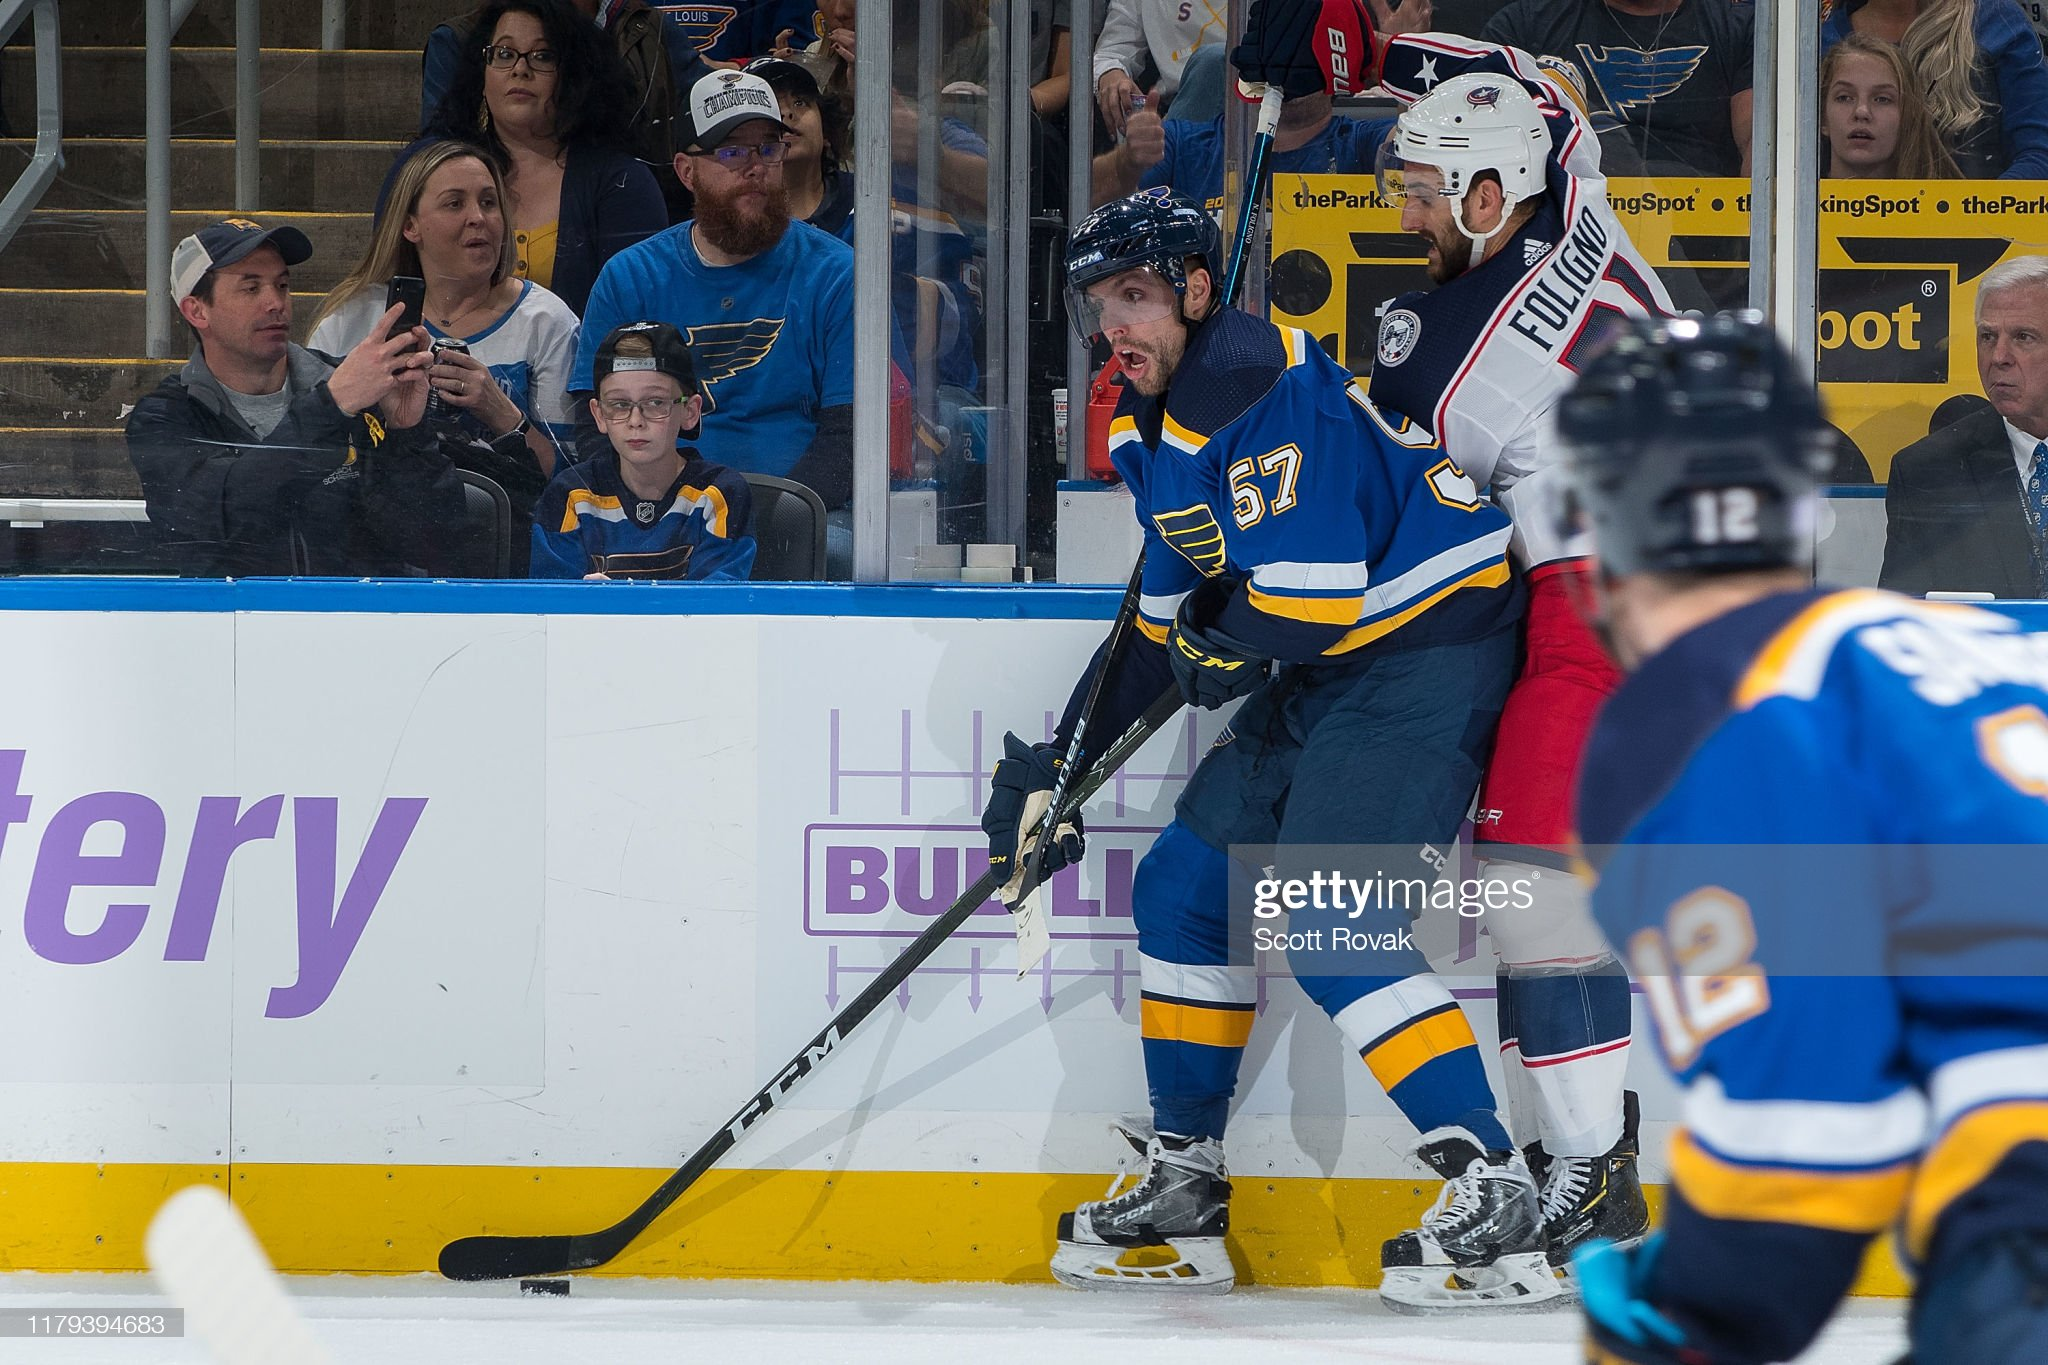 david-perron-of-the-st-louis-blues-contr